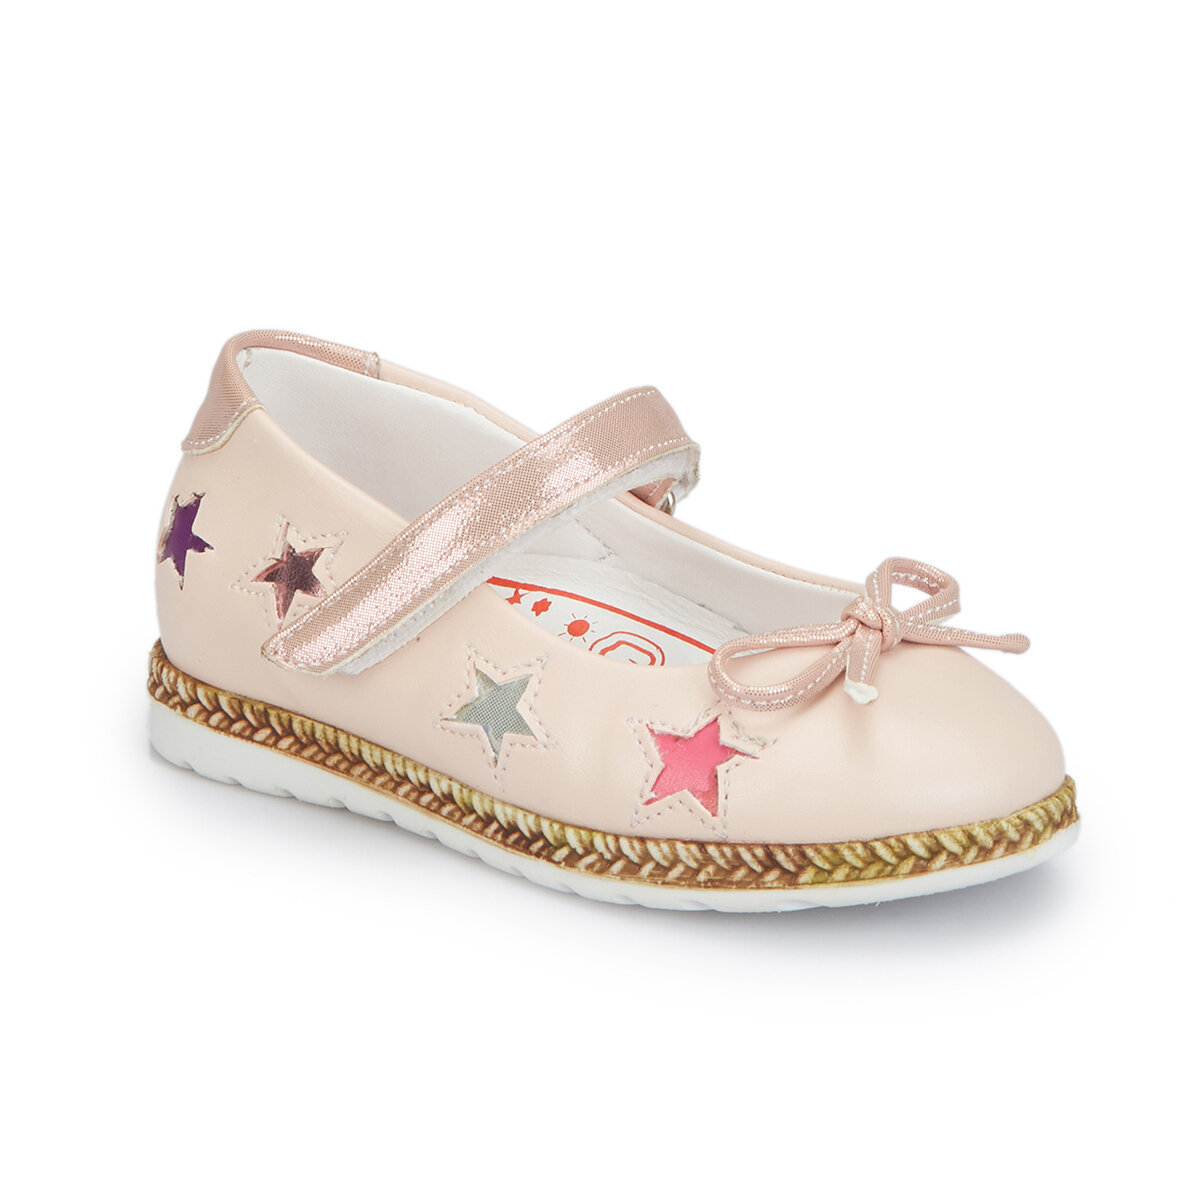 FLO 81. 510024.B Pink Female Child Ballerina Polaris